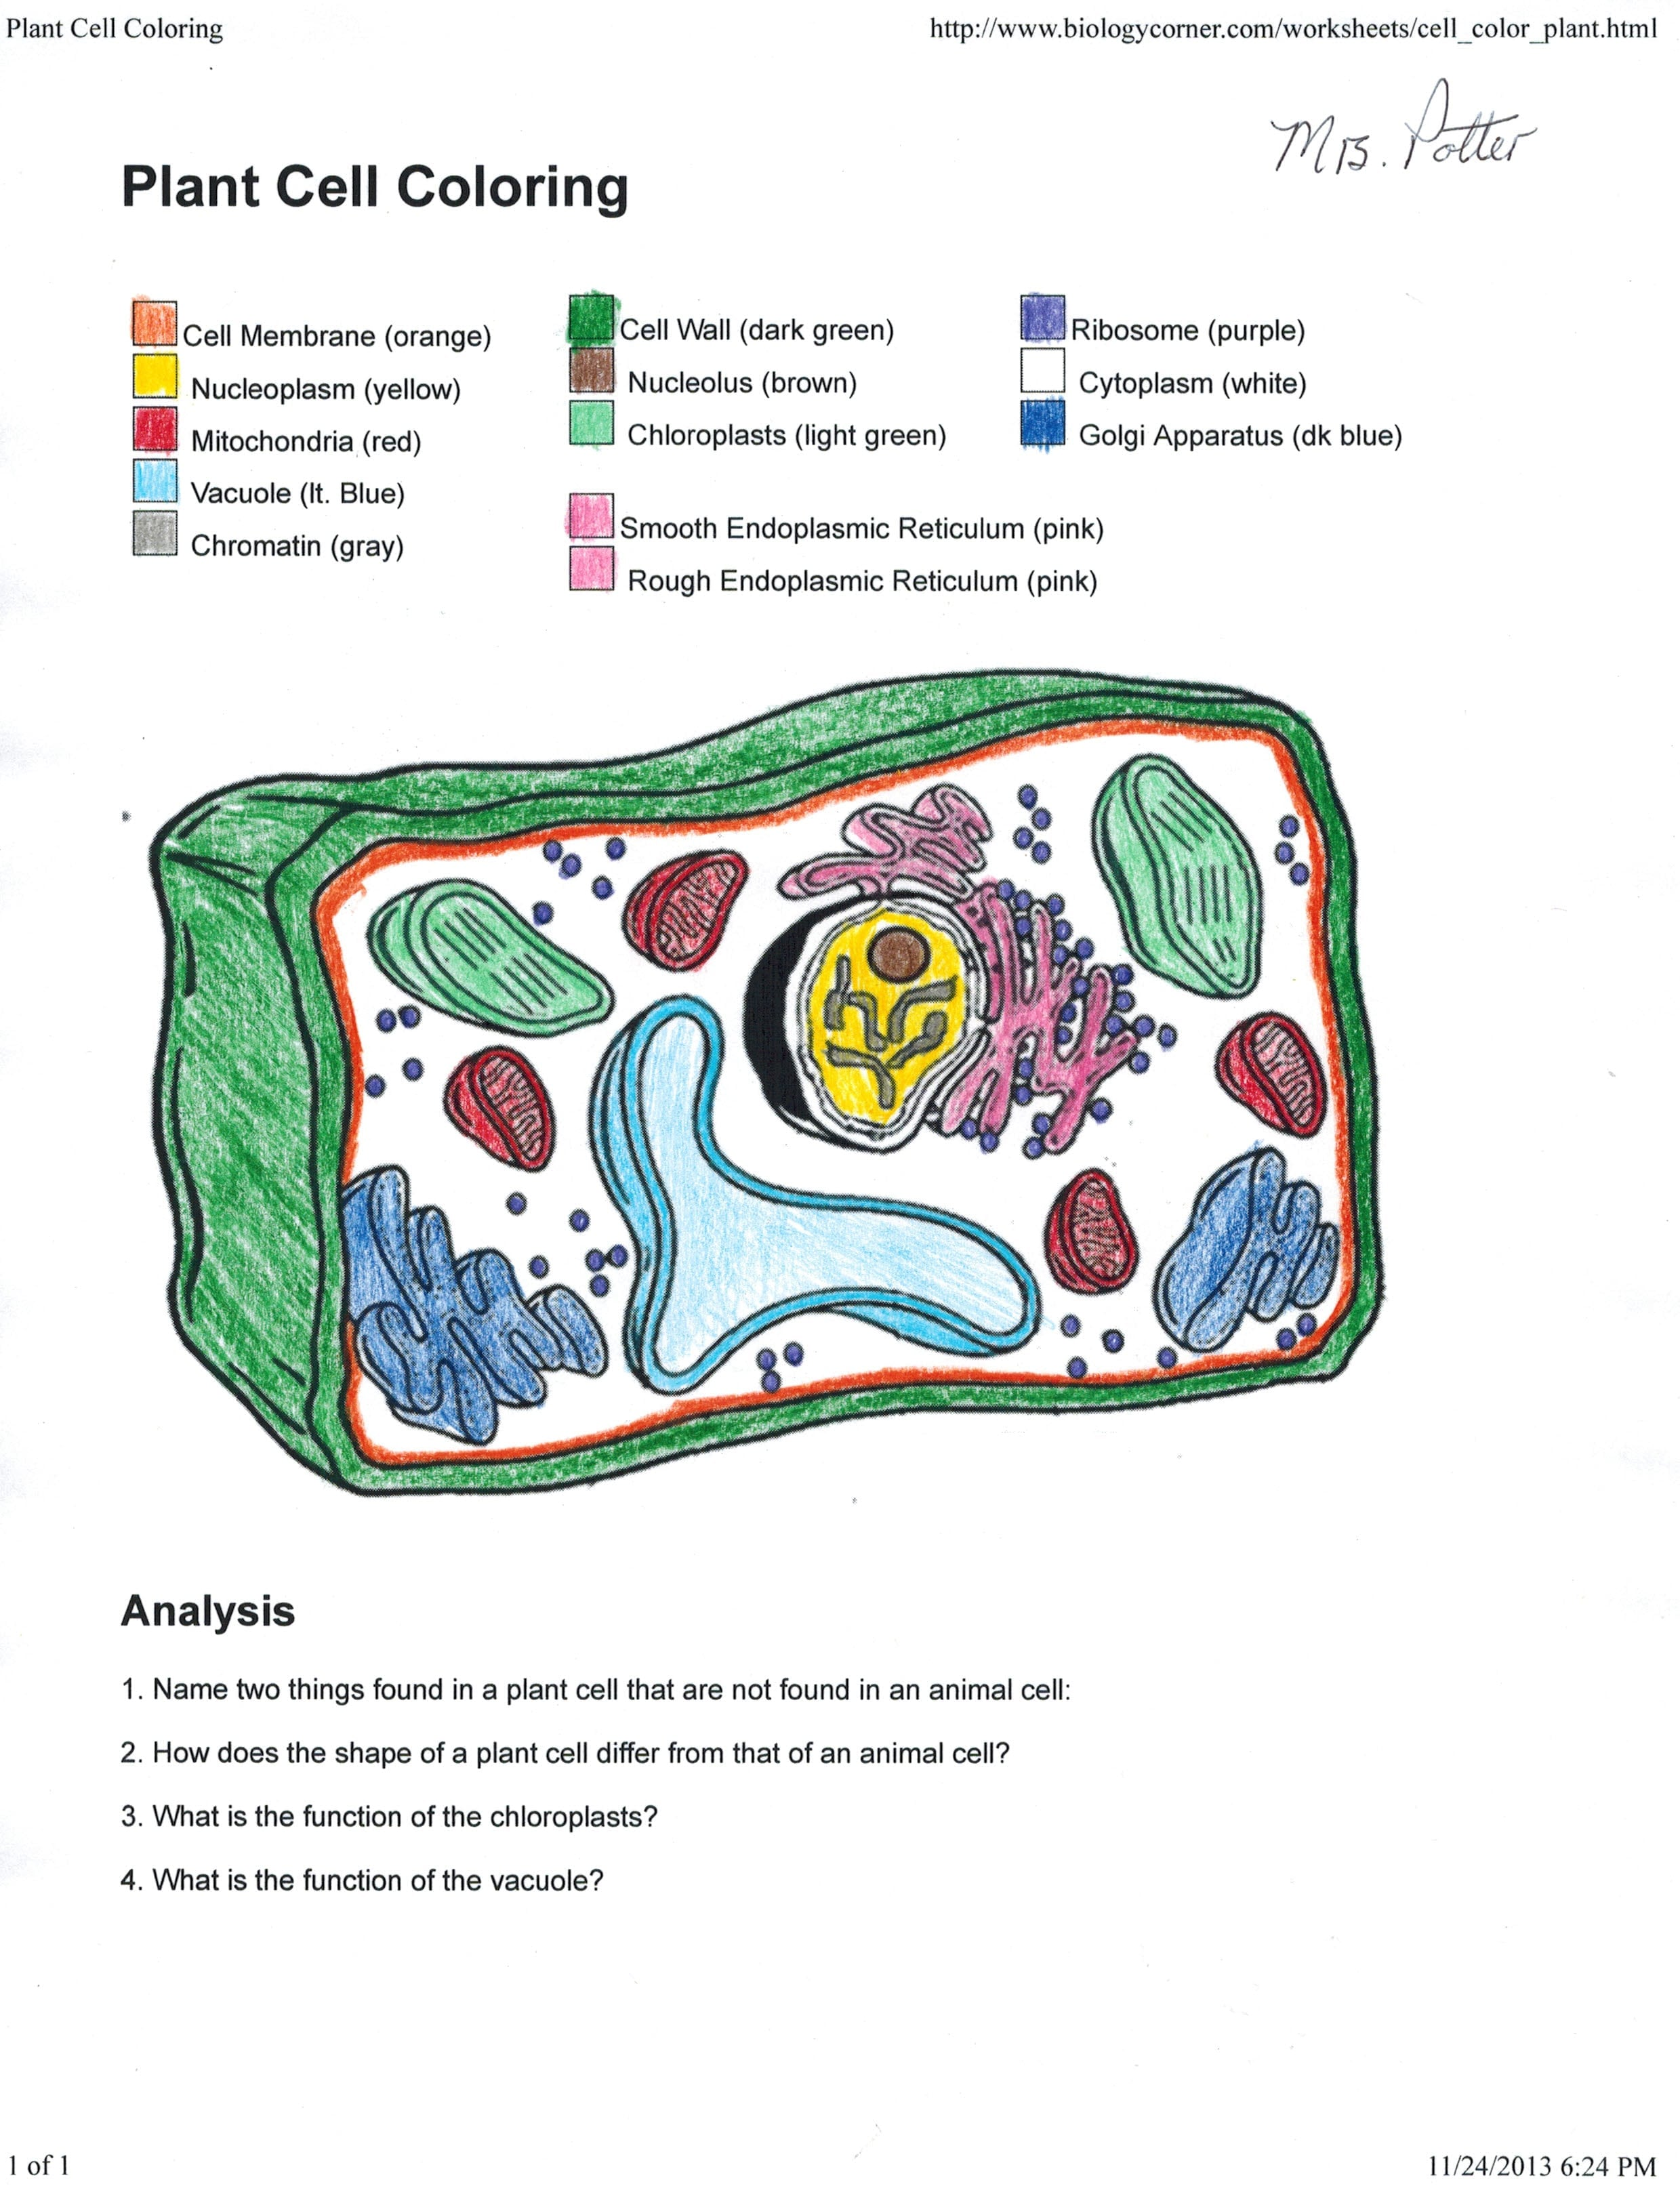 Animal Cell Coloring Page Answers Animal Cell Coloring Worksheet